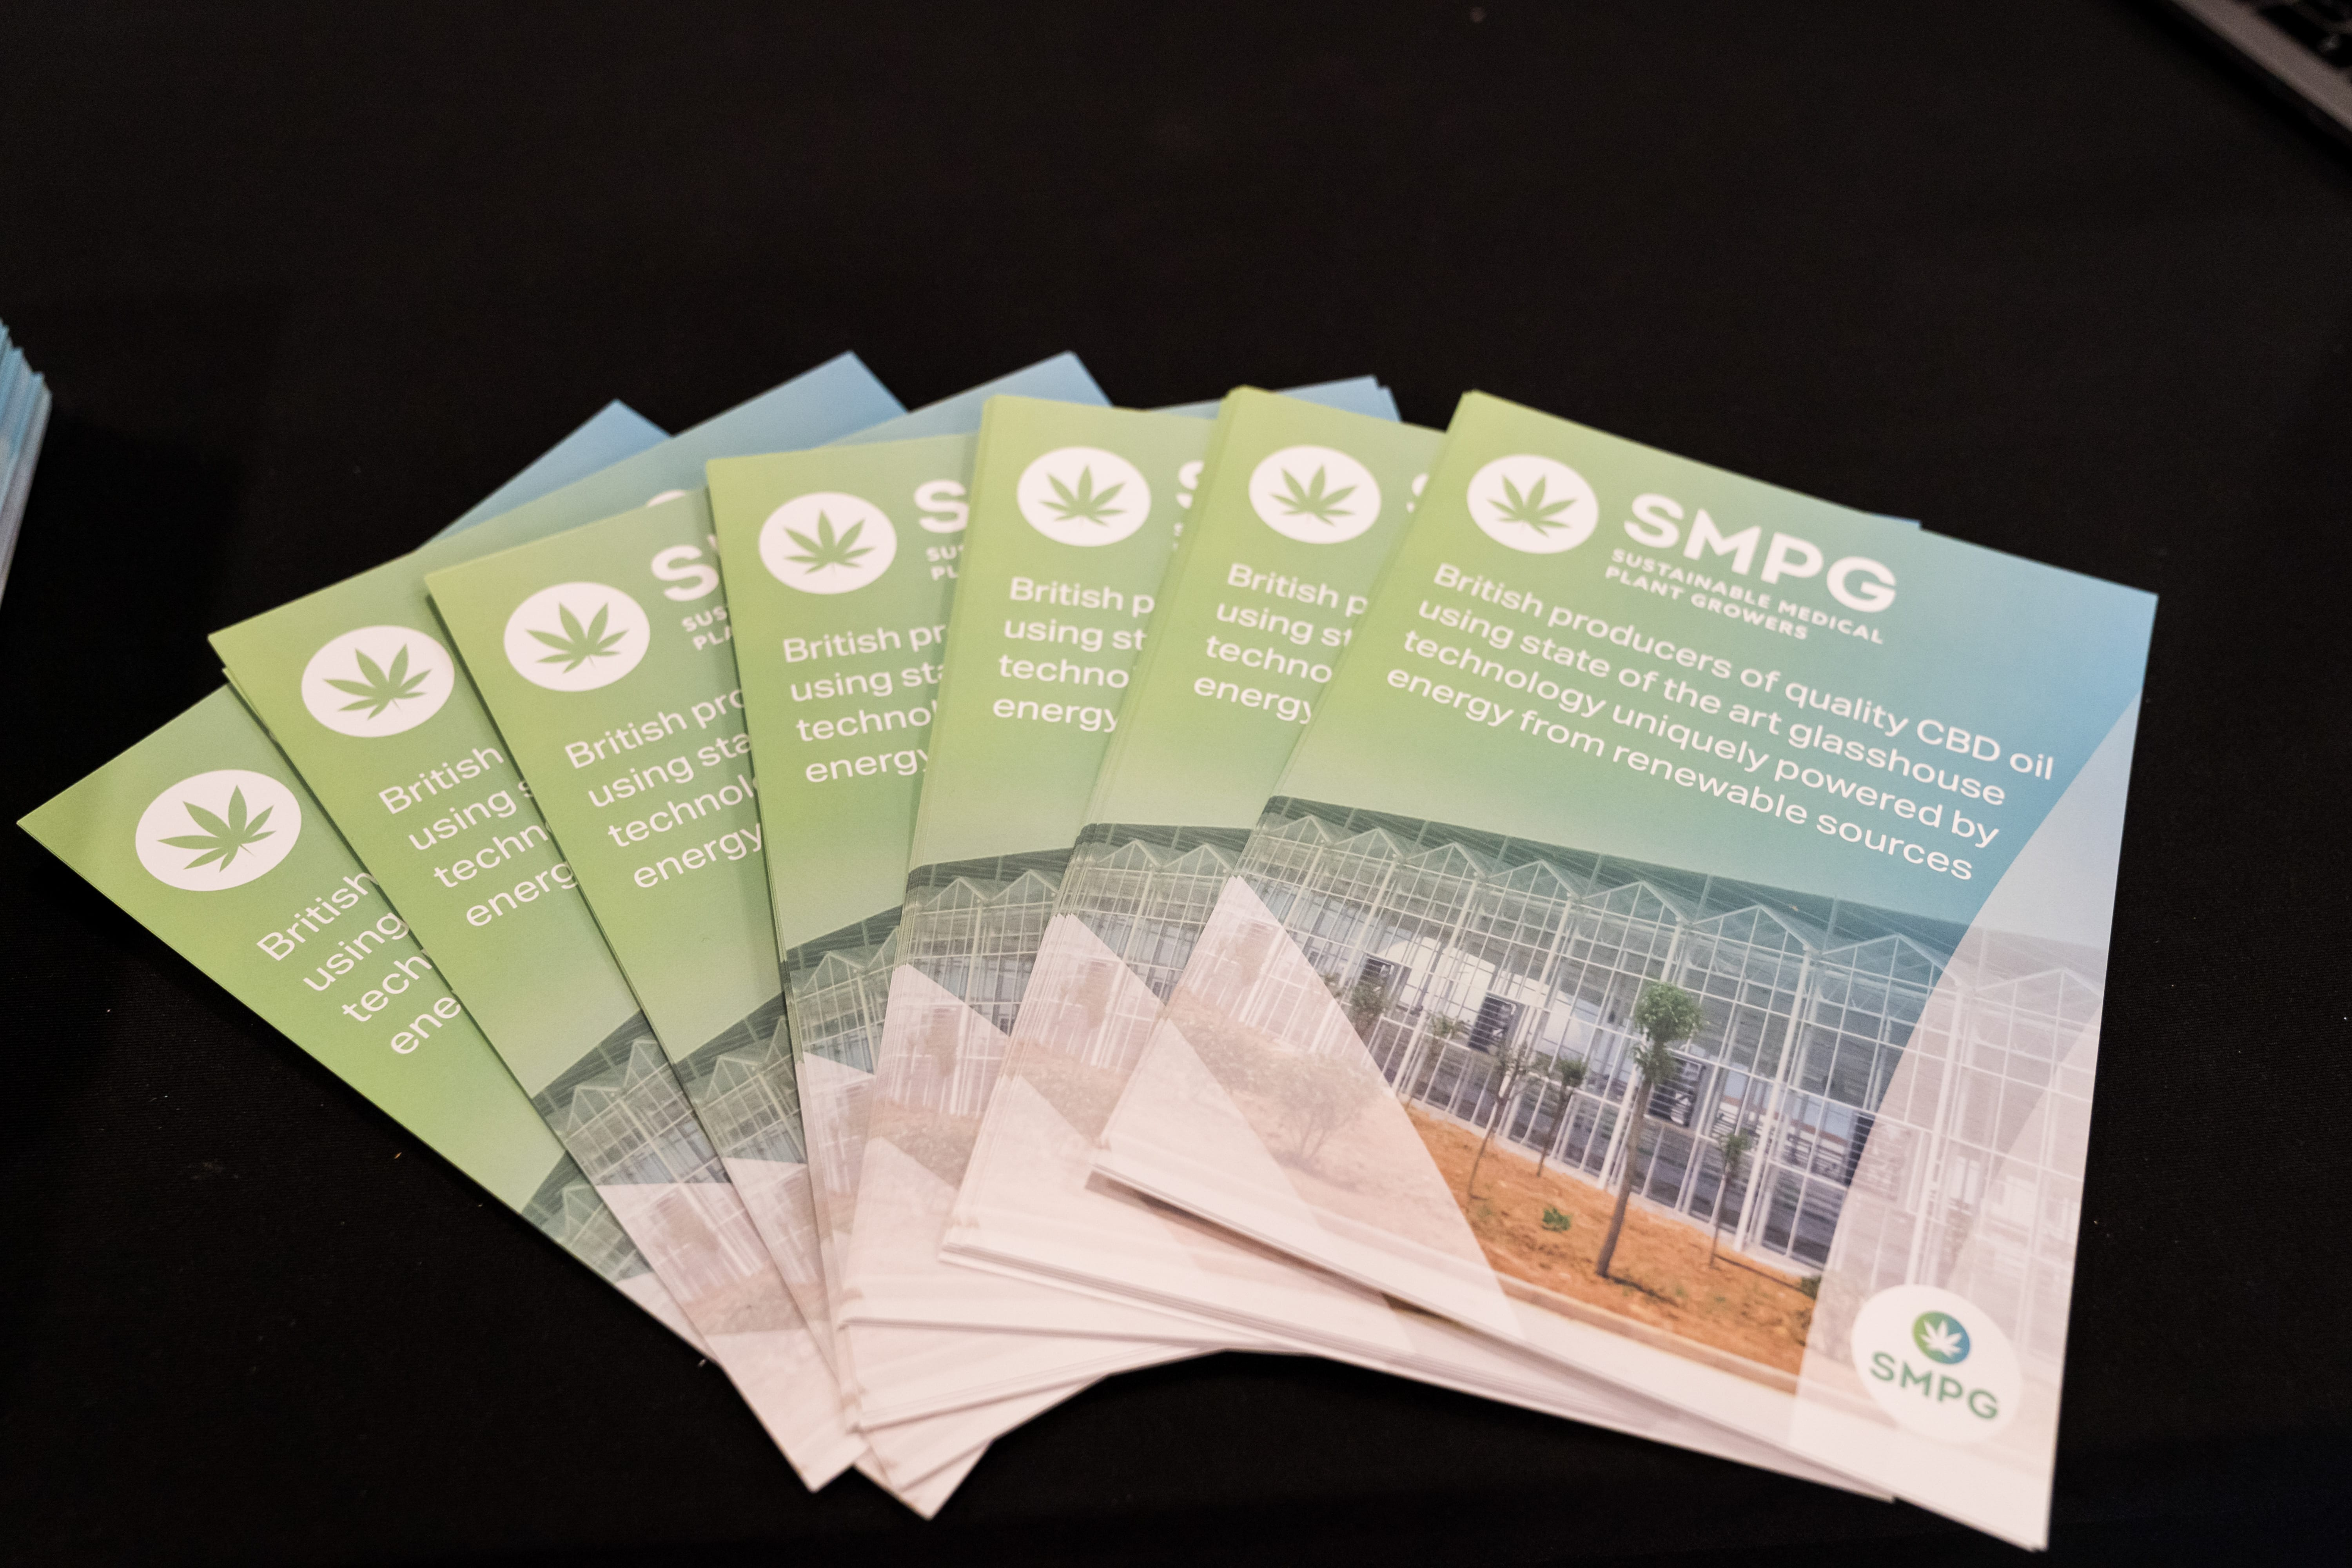 Sustainable Medical Plant Growers Plc (SMPG) brochures